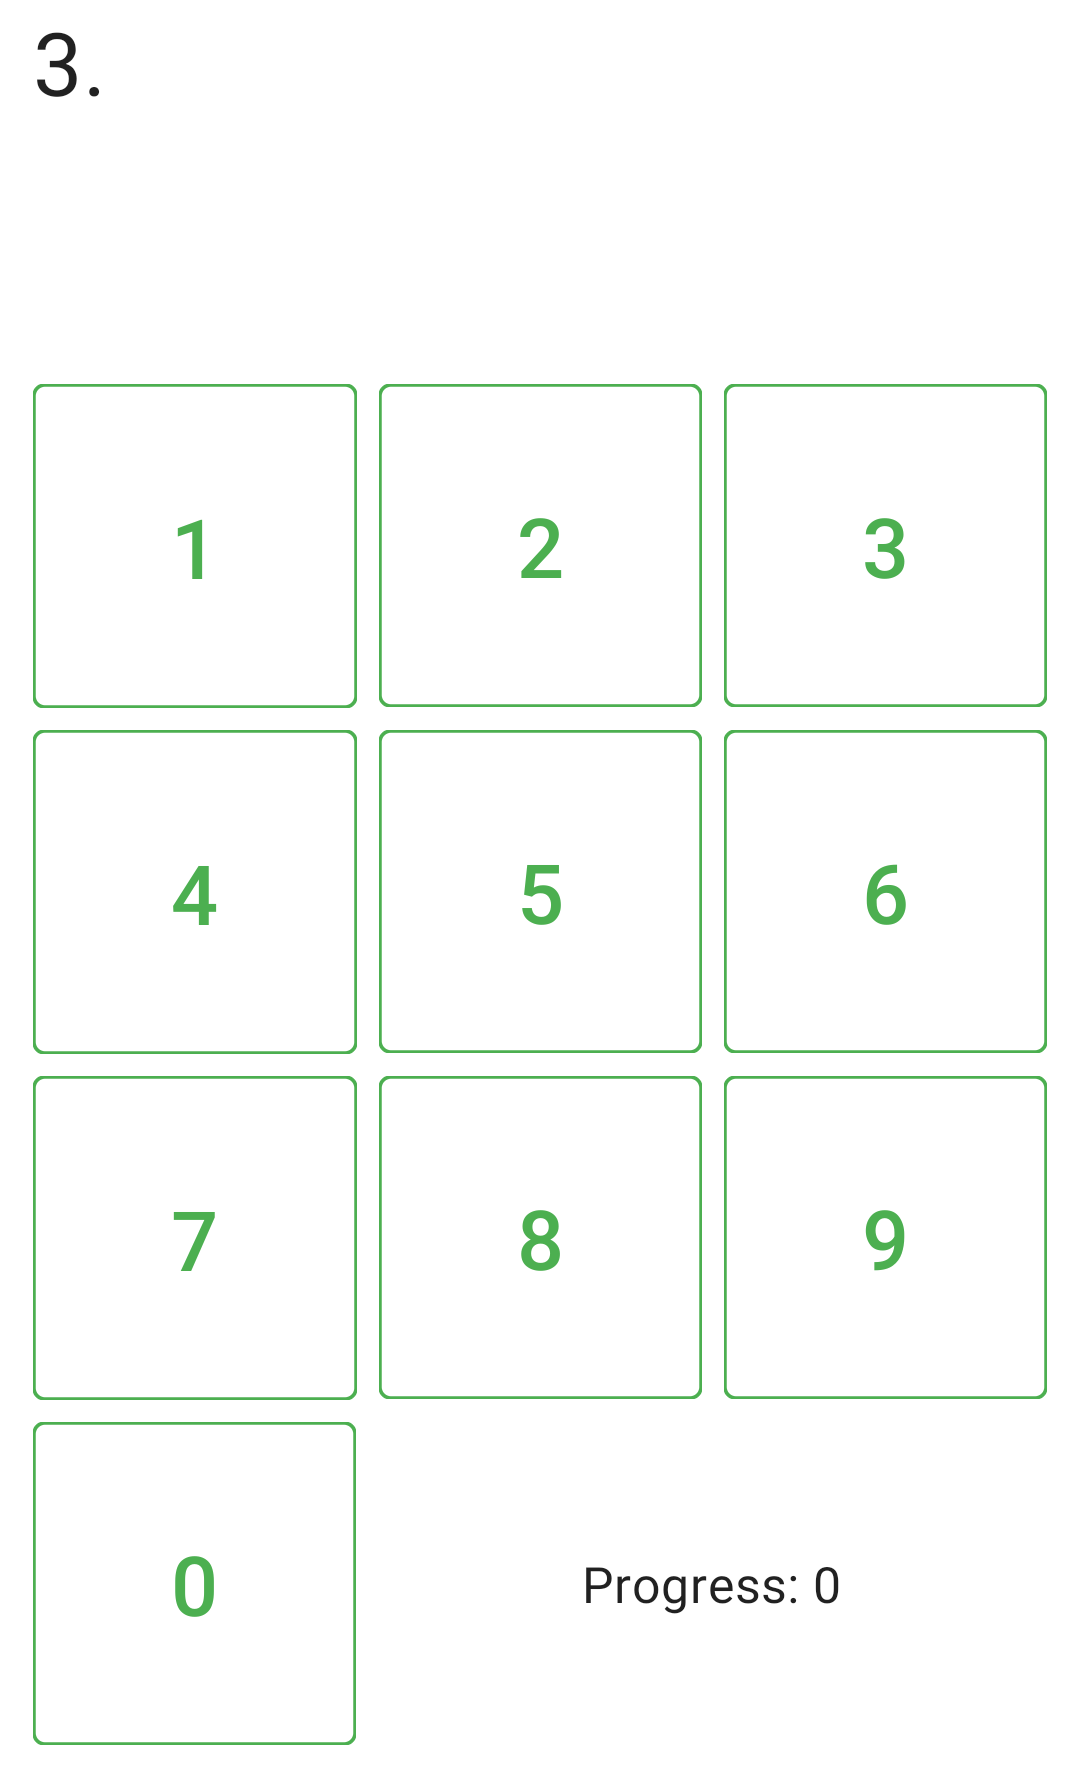 The completed keypad